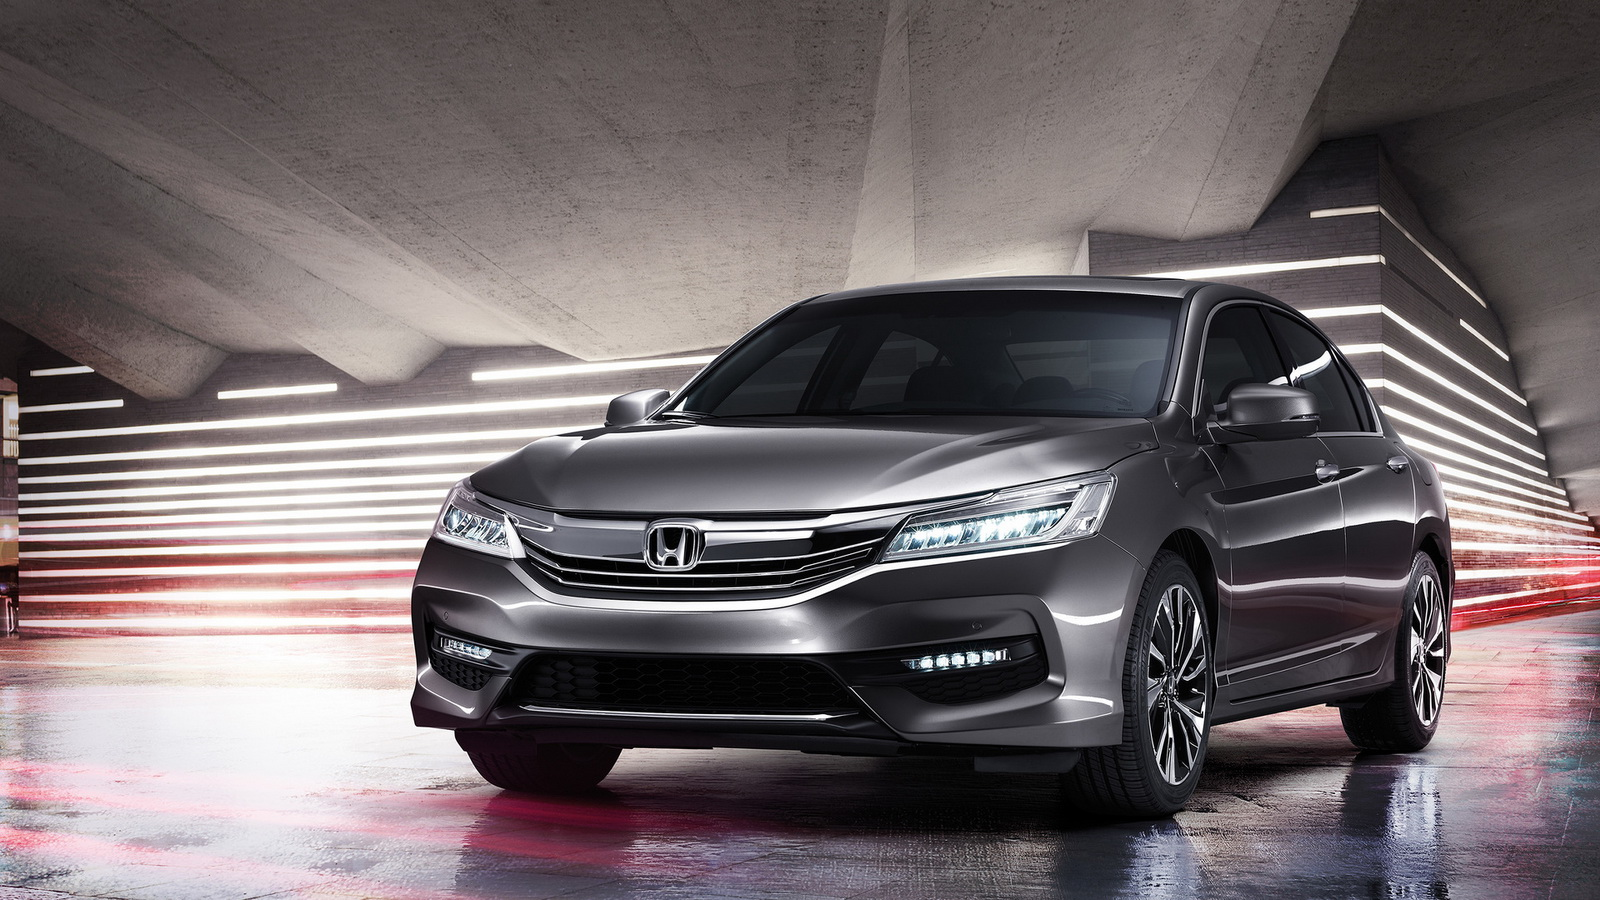 2016 Honda Accord Sedan Debuts In The Philippines